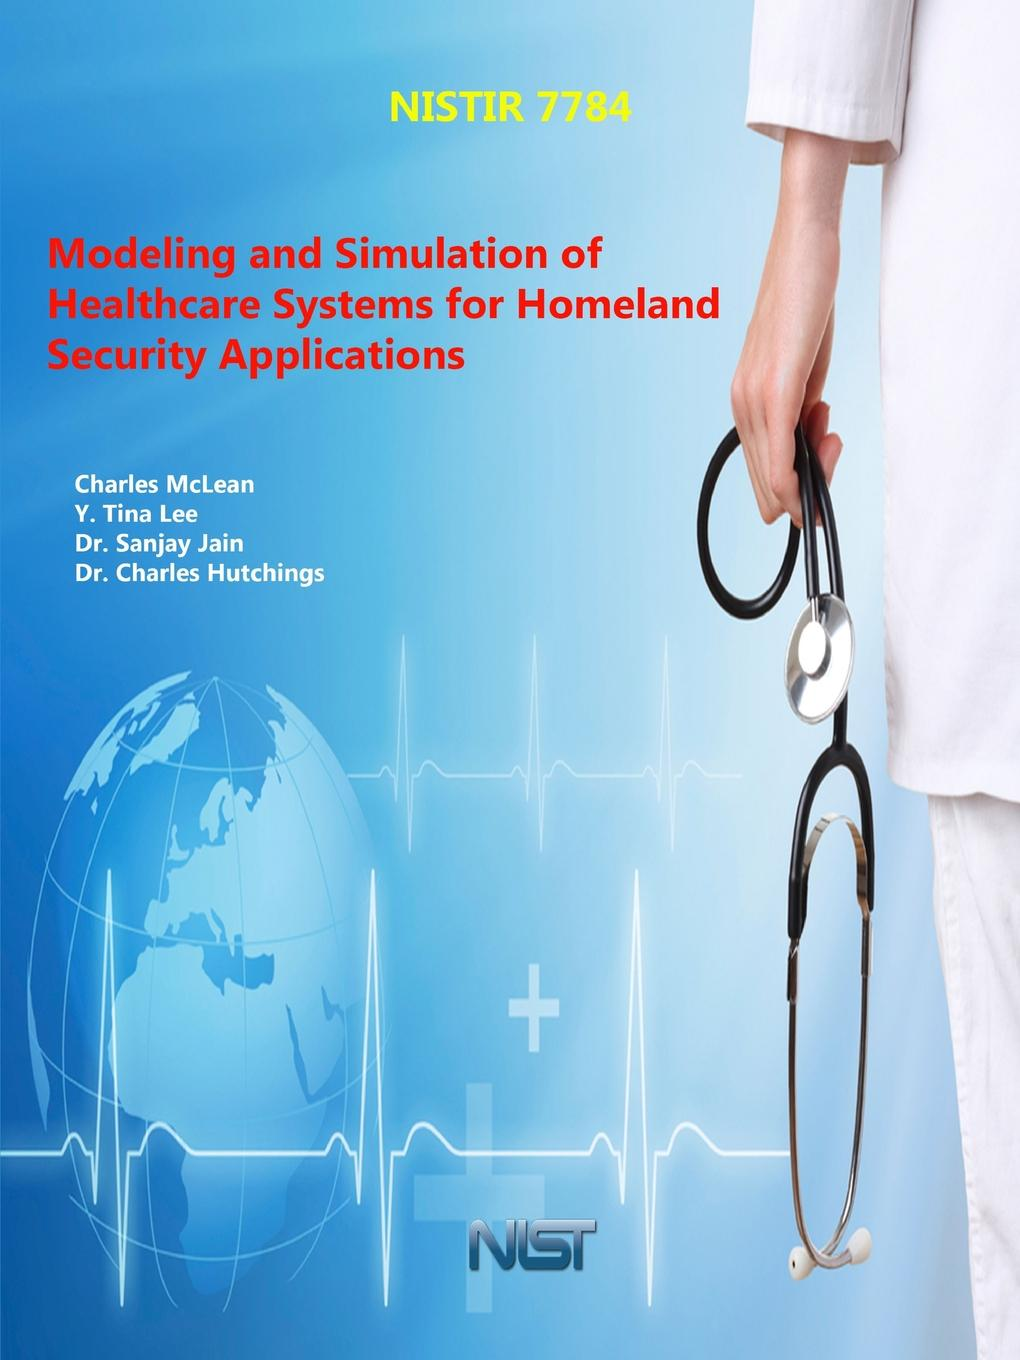 все цены на U.S. Department of Commerce, Charles McLean, Y. Tina Lee Modeling and Simulation of Healthcare Systems for Homeland Security Applications онлайн